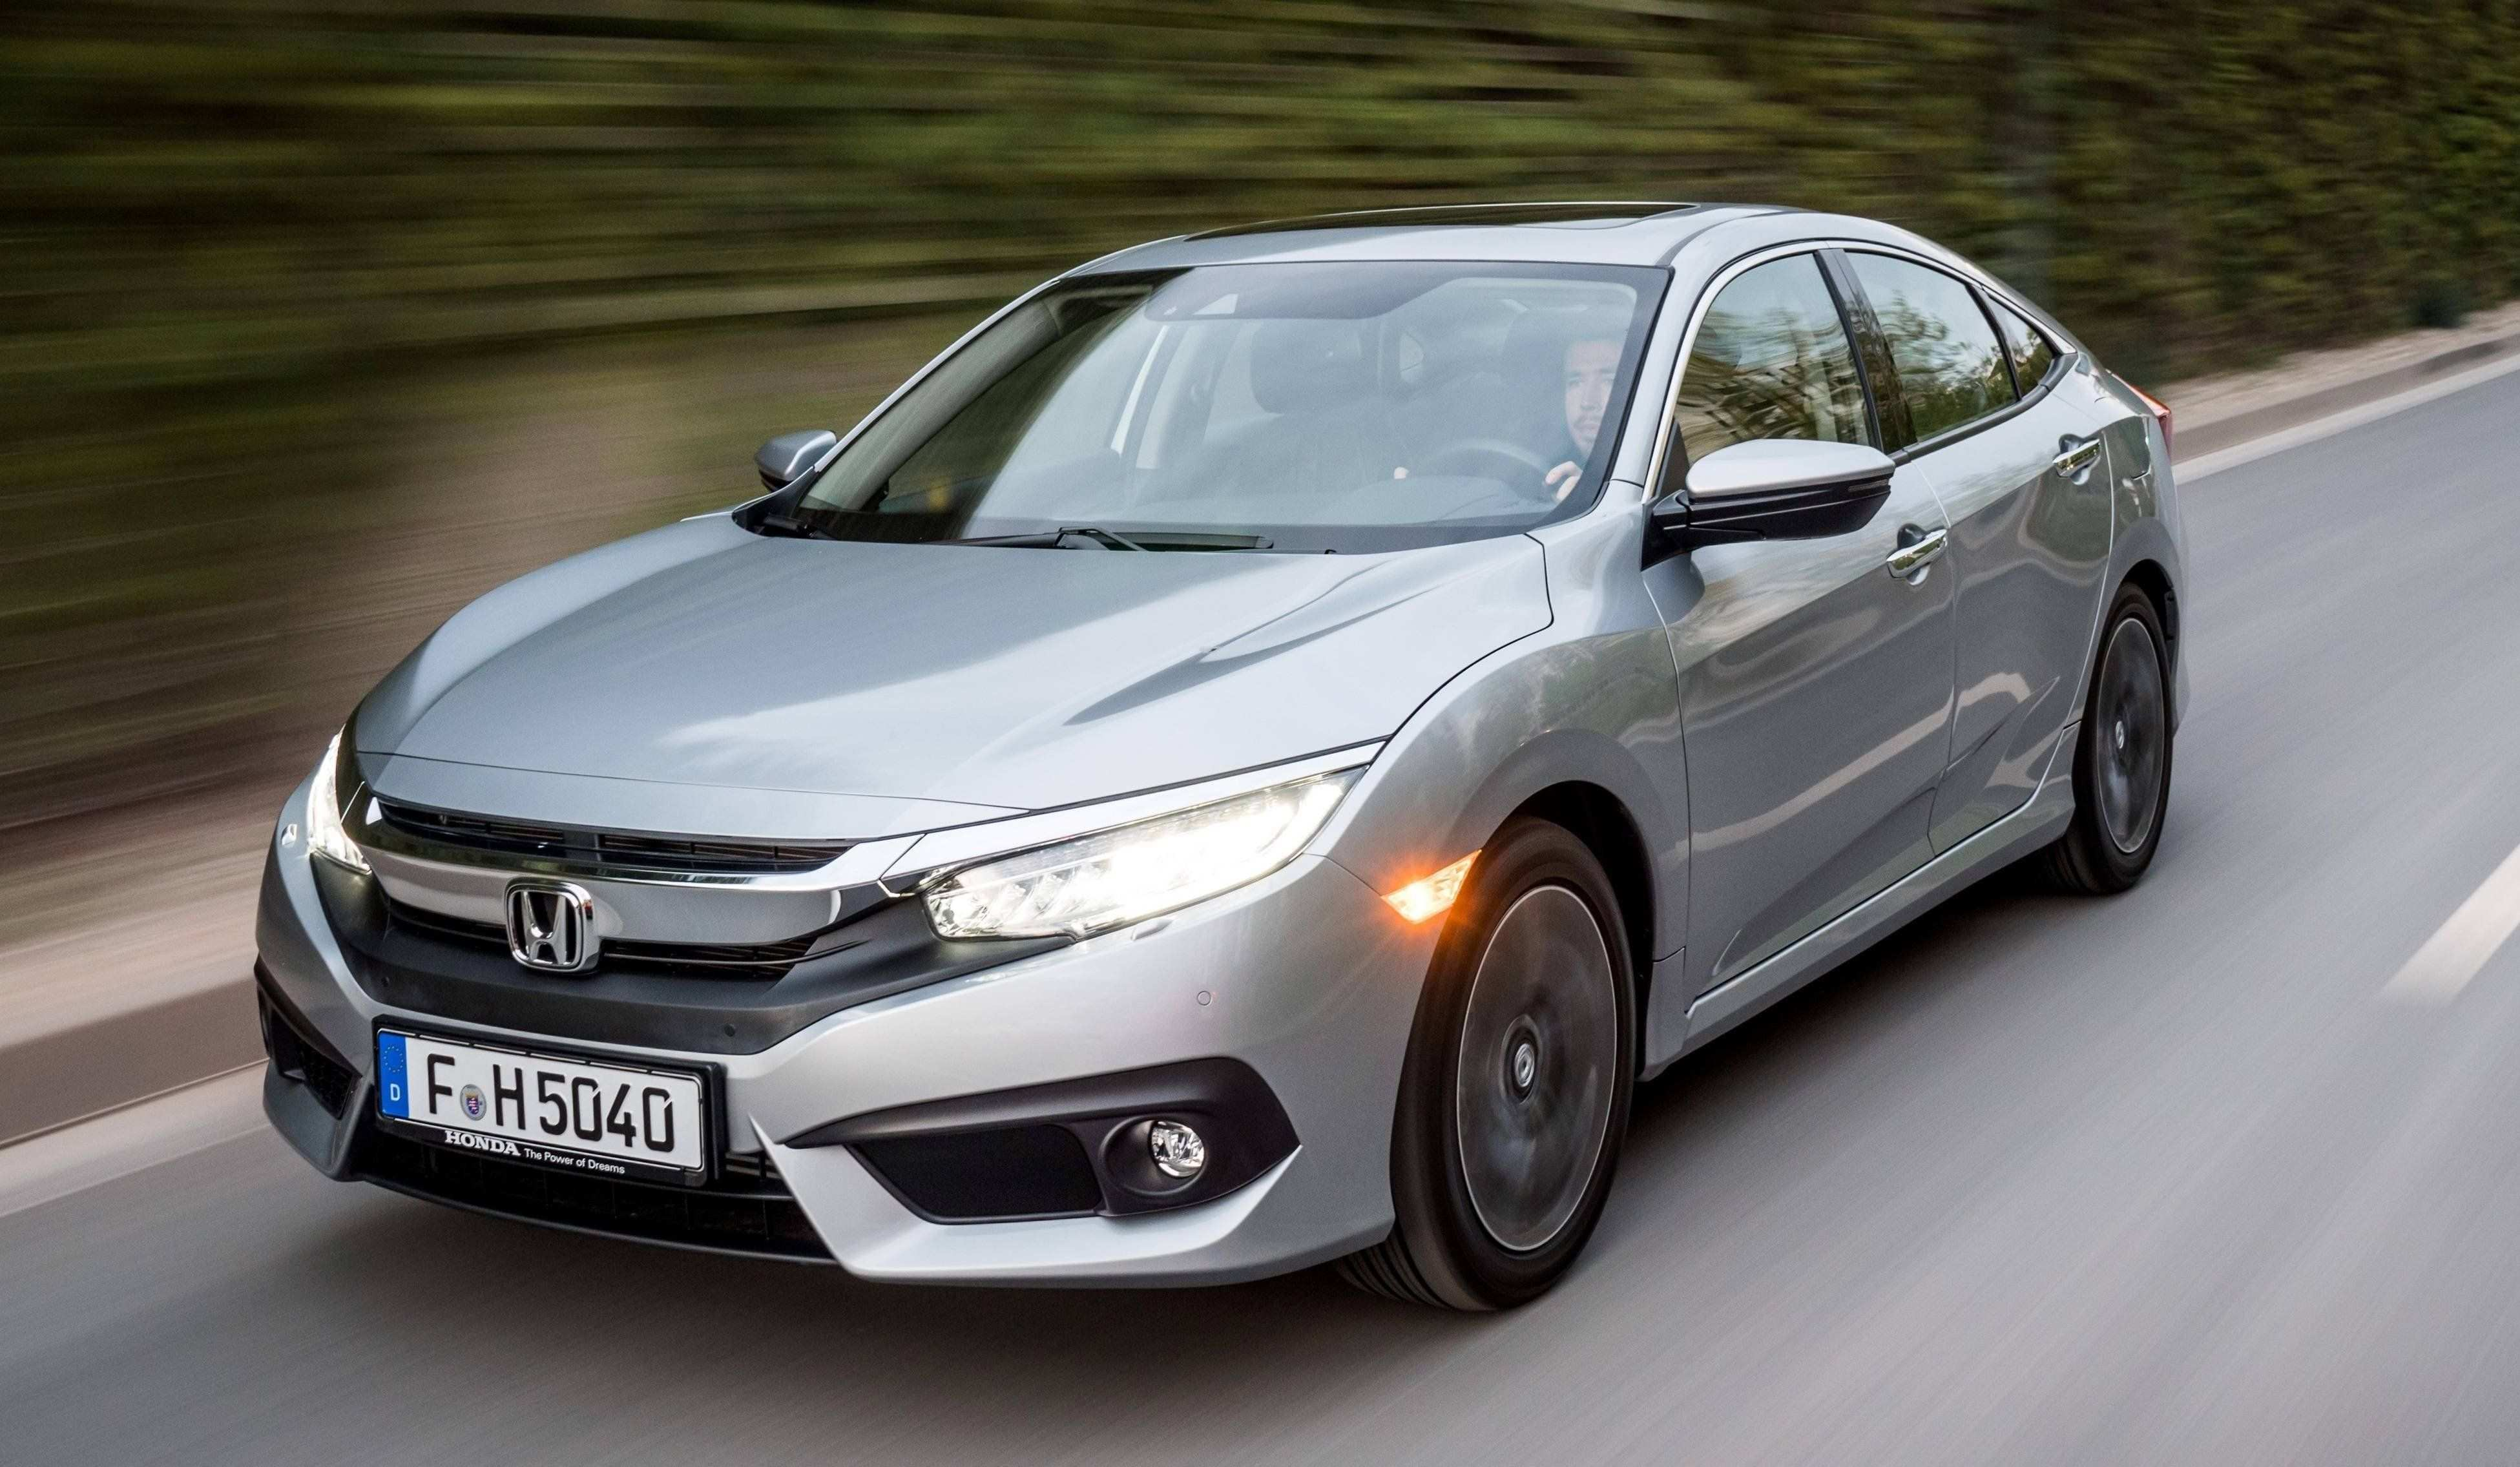 51 All New Honda New City 2020 Release Date